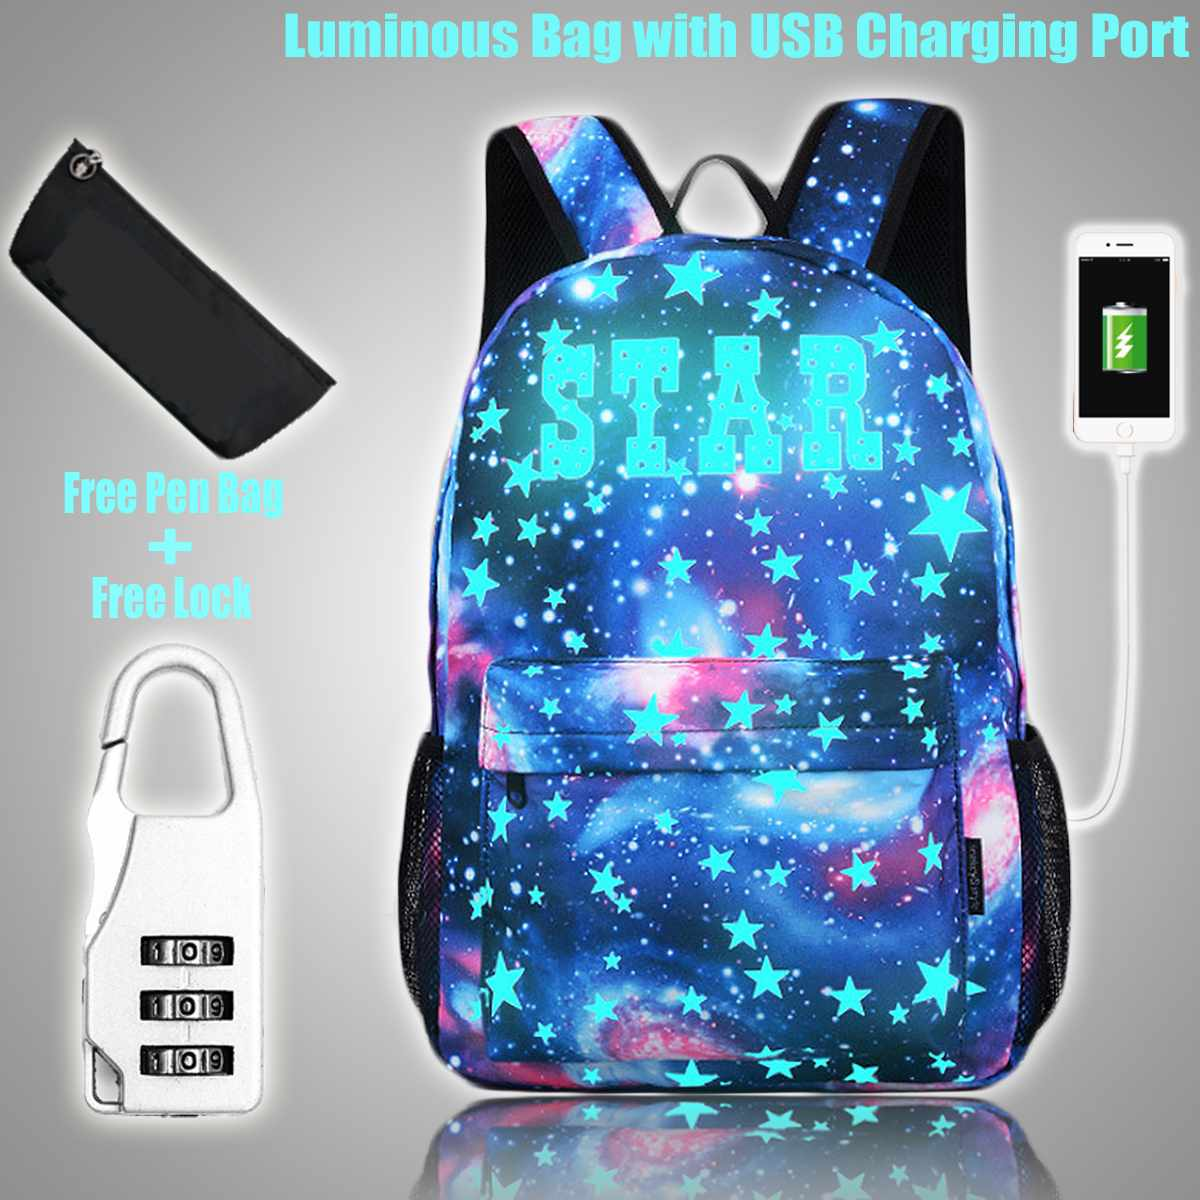 Luminous Student School Bag Laptop Backpack For Boy Girl Daypack With USB Charging Port Anti-theft Lock For Camping Travel